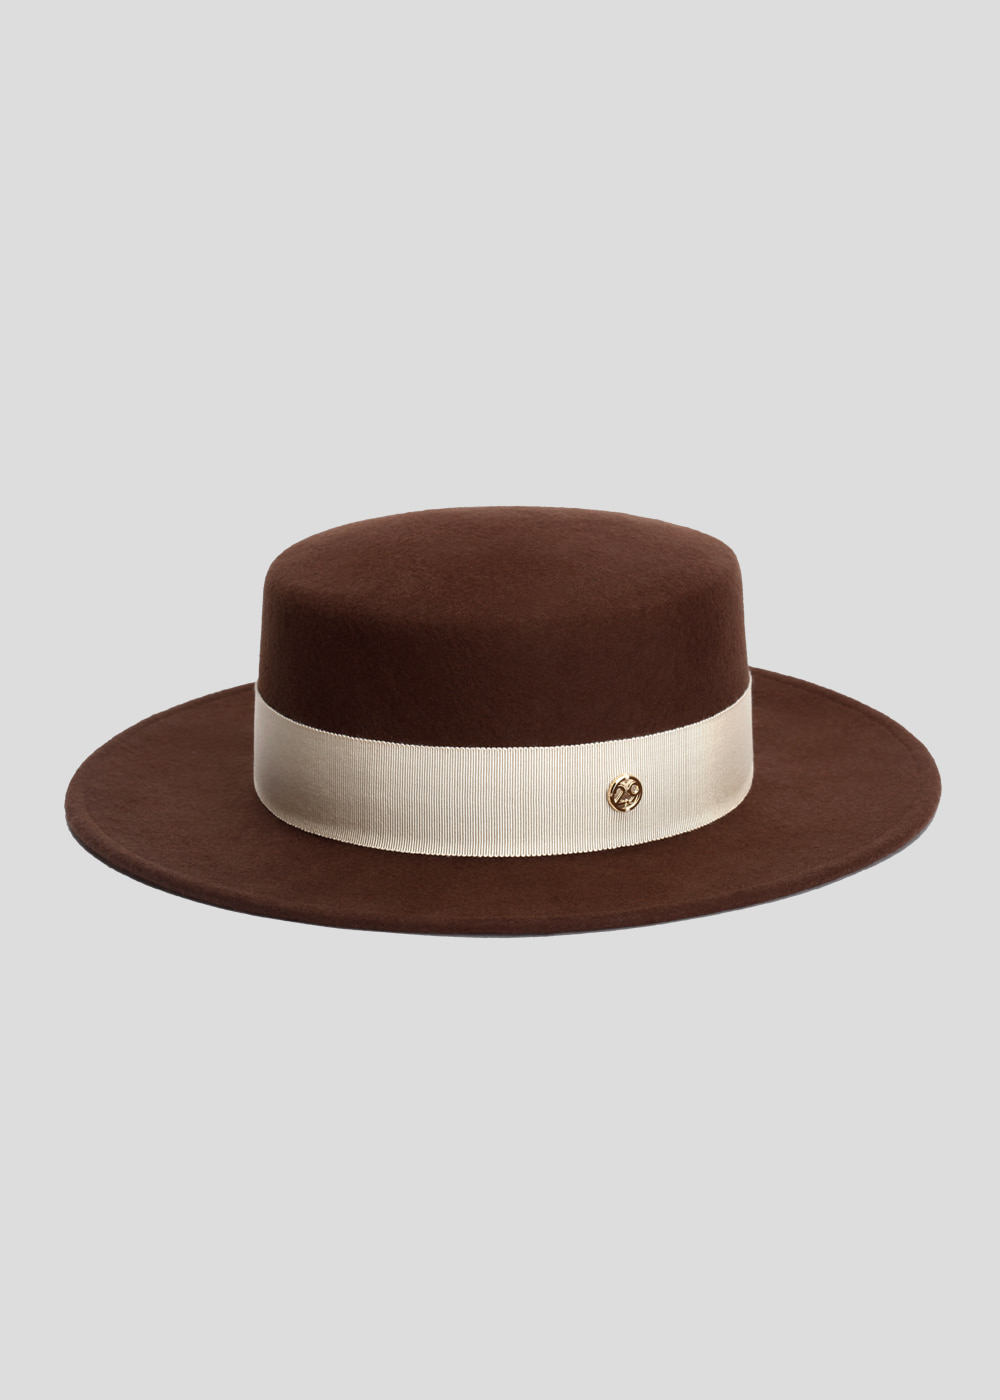 [sold out] classic boater dark brown/ ivory